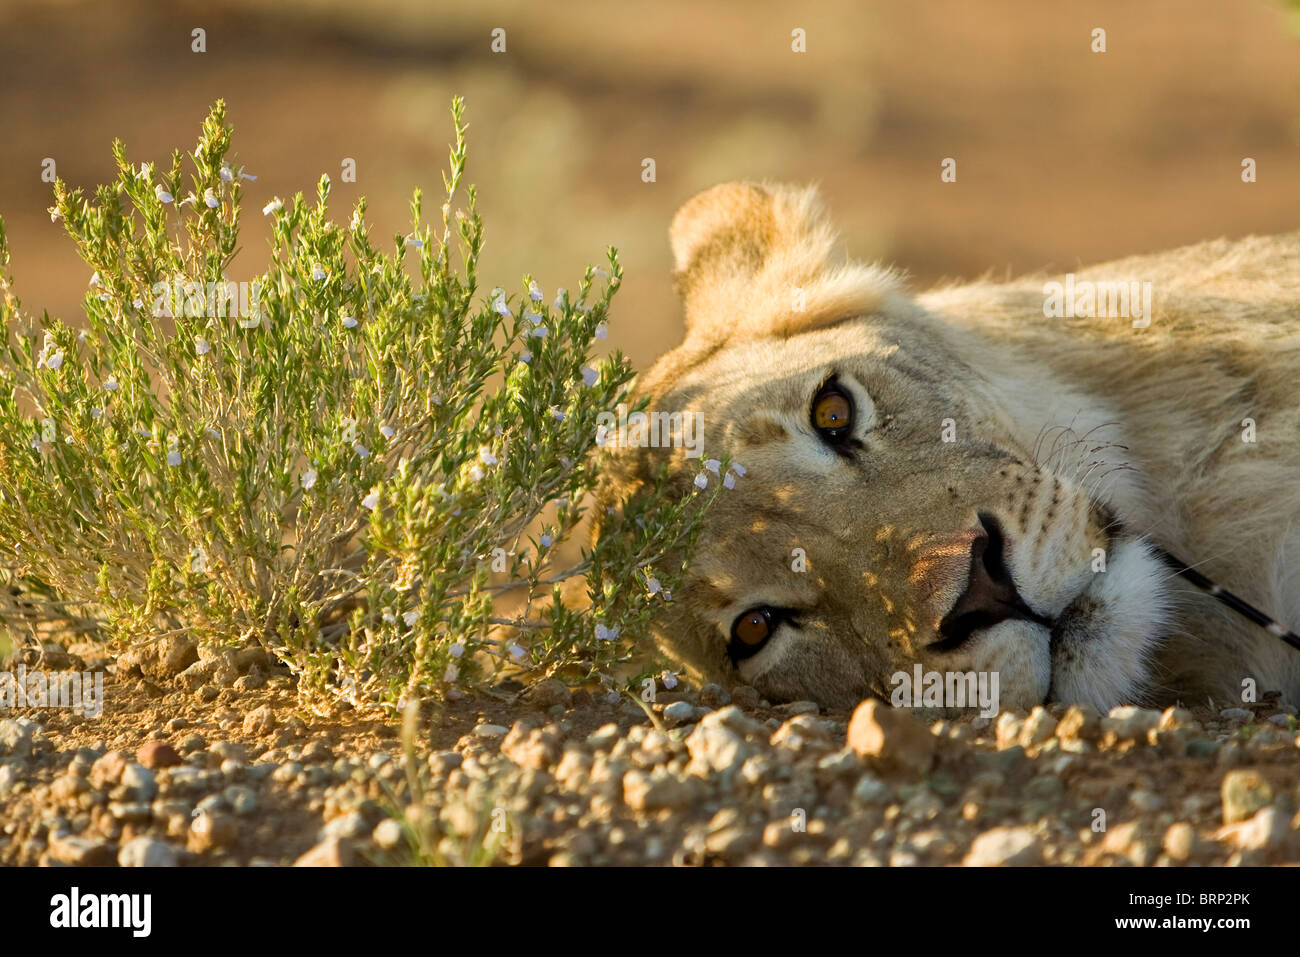 Lioness lying on her side with a porcupine quill stuck in her neck - Stock Image